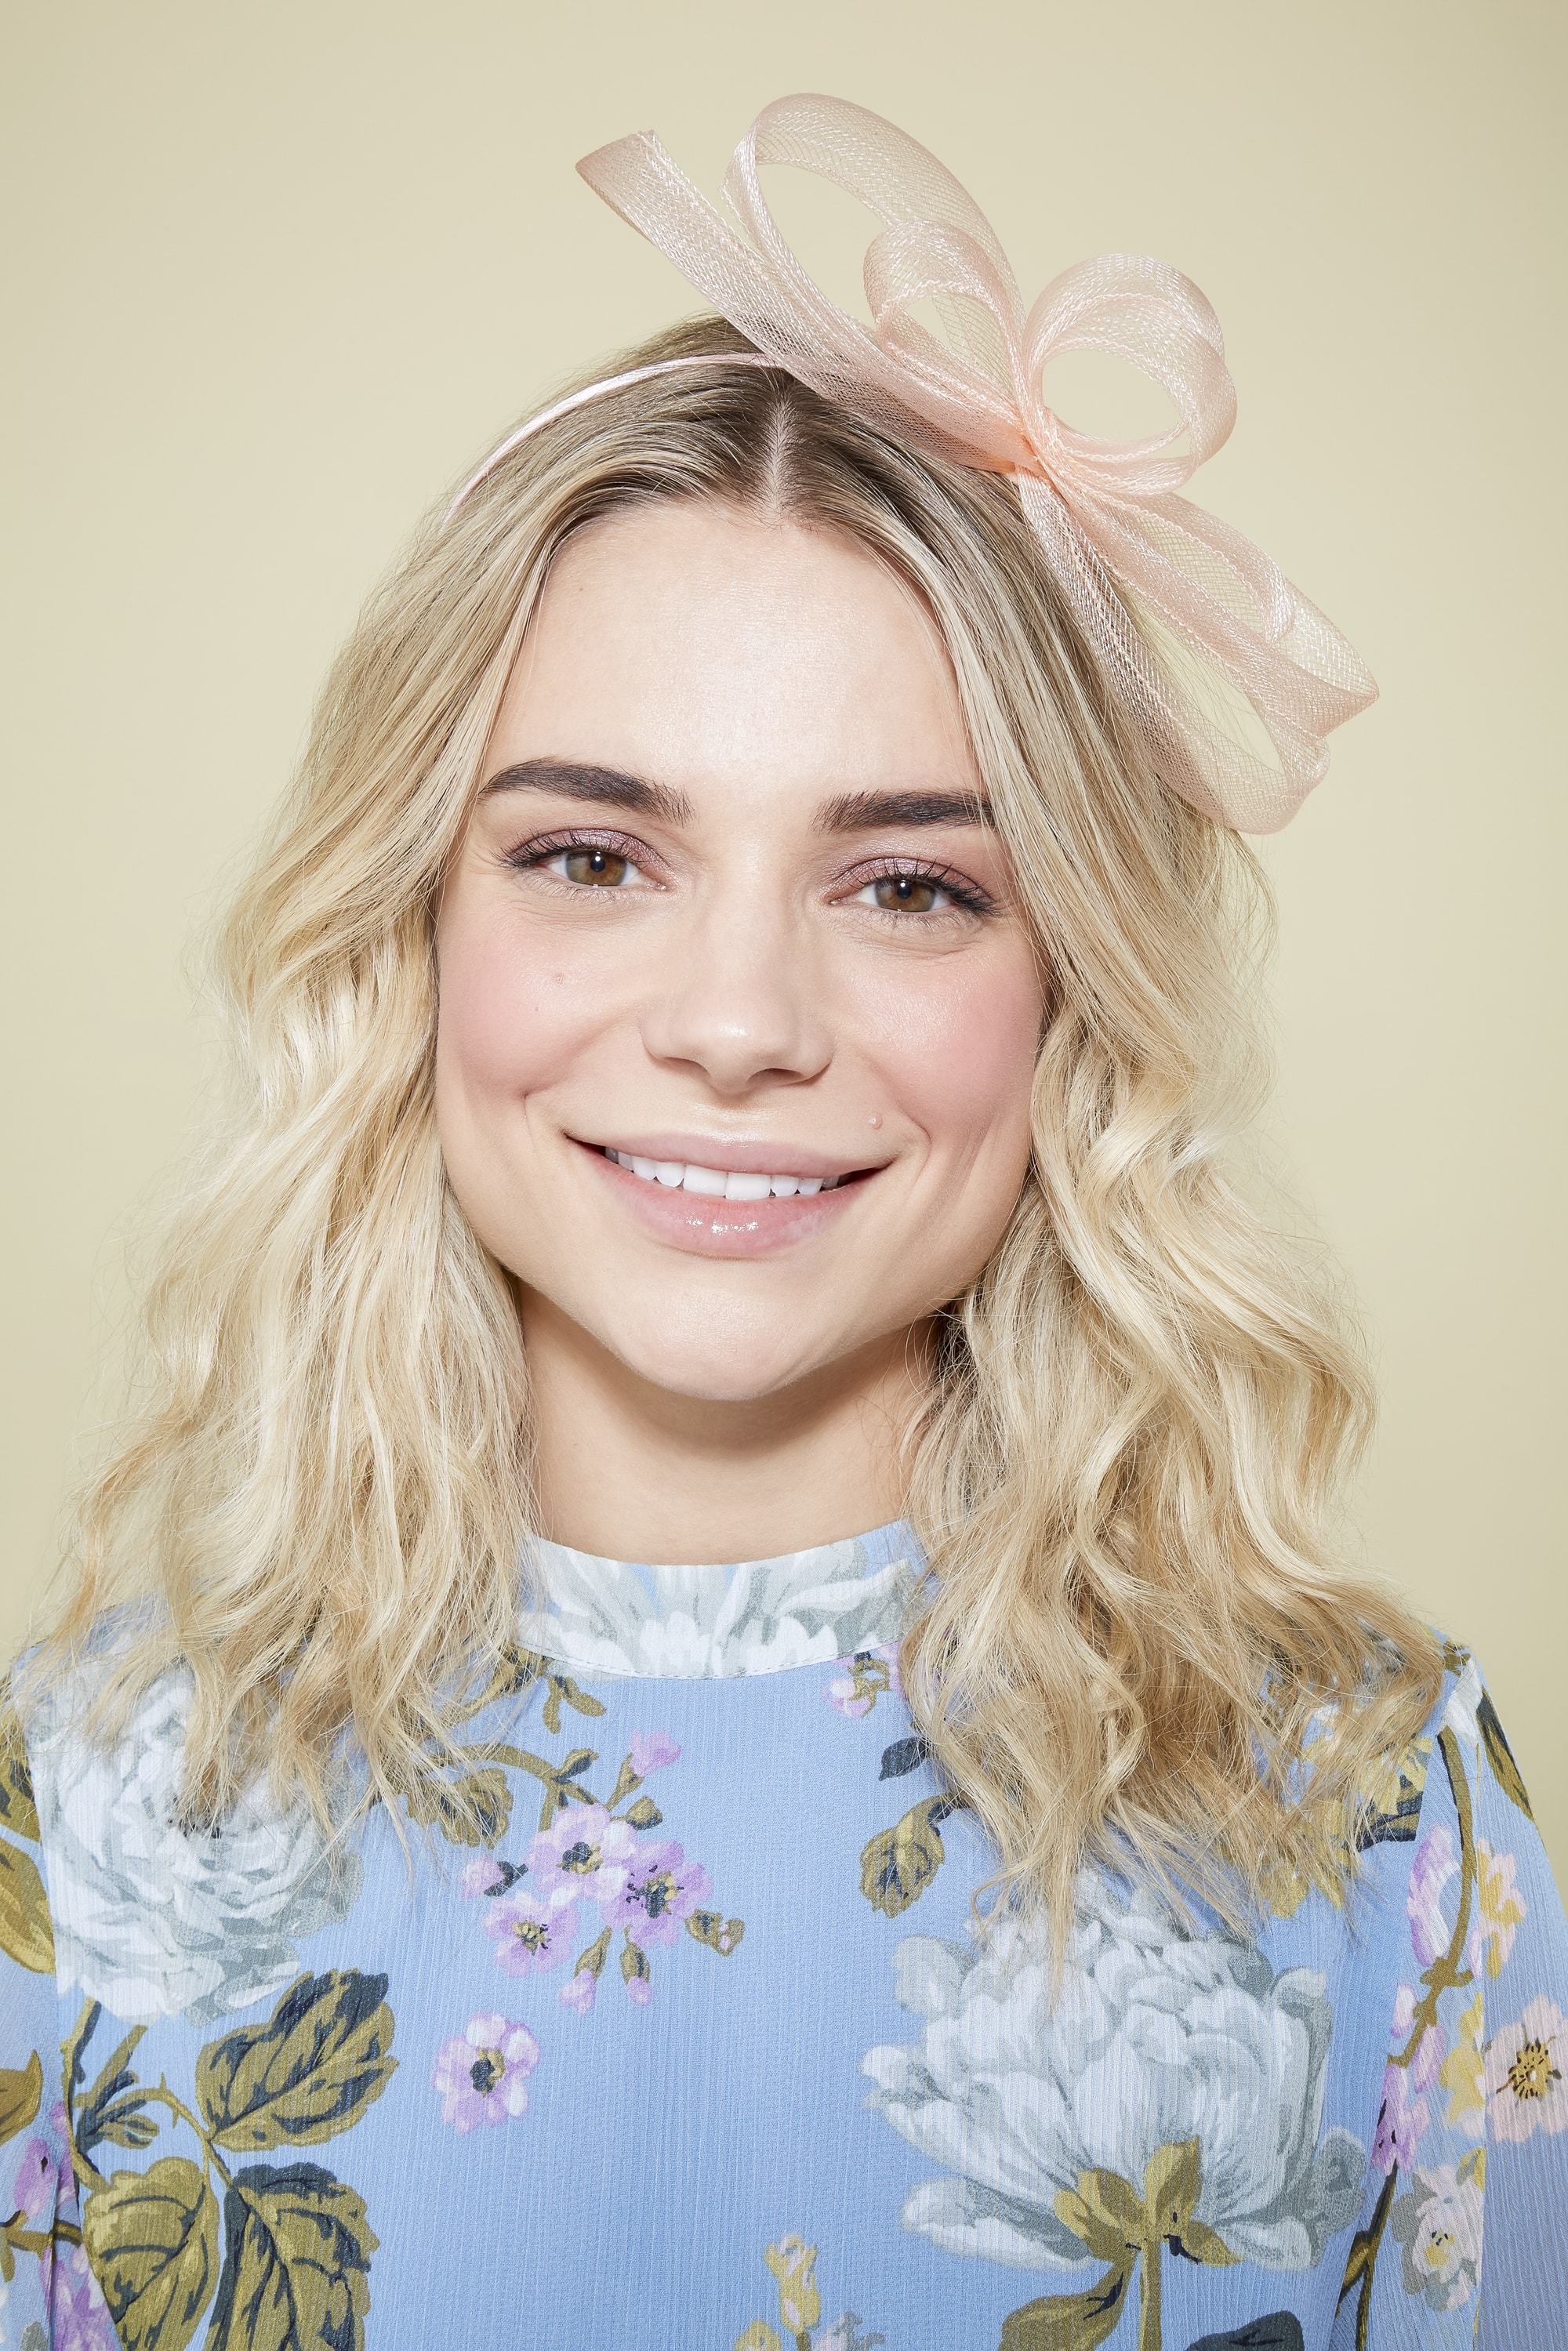 blonde model with blonde medium length hair styled in beach waves wearing a pink formal headpiece and light blue floral top